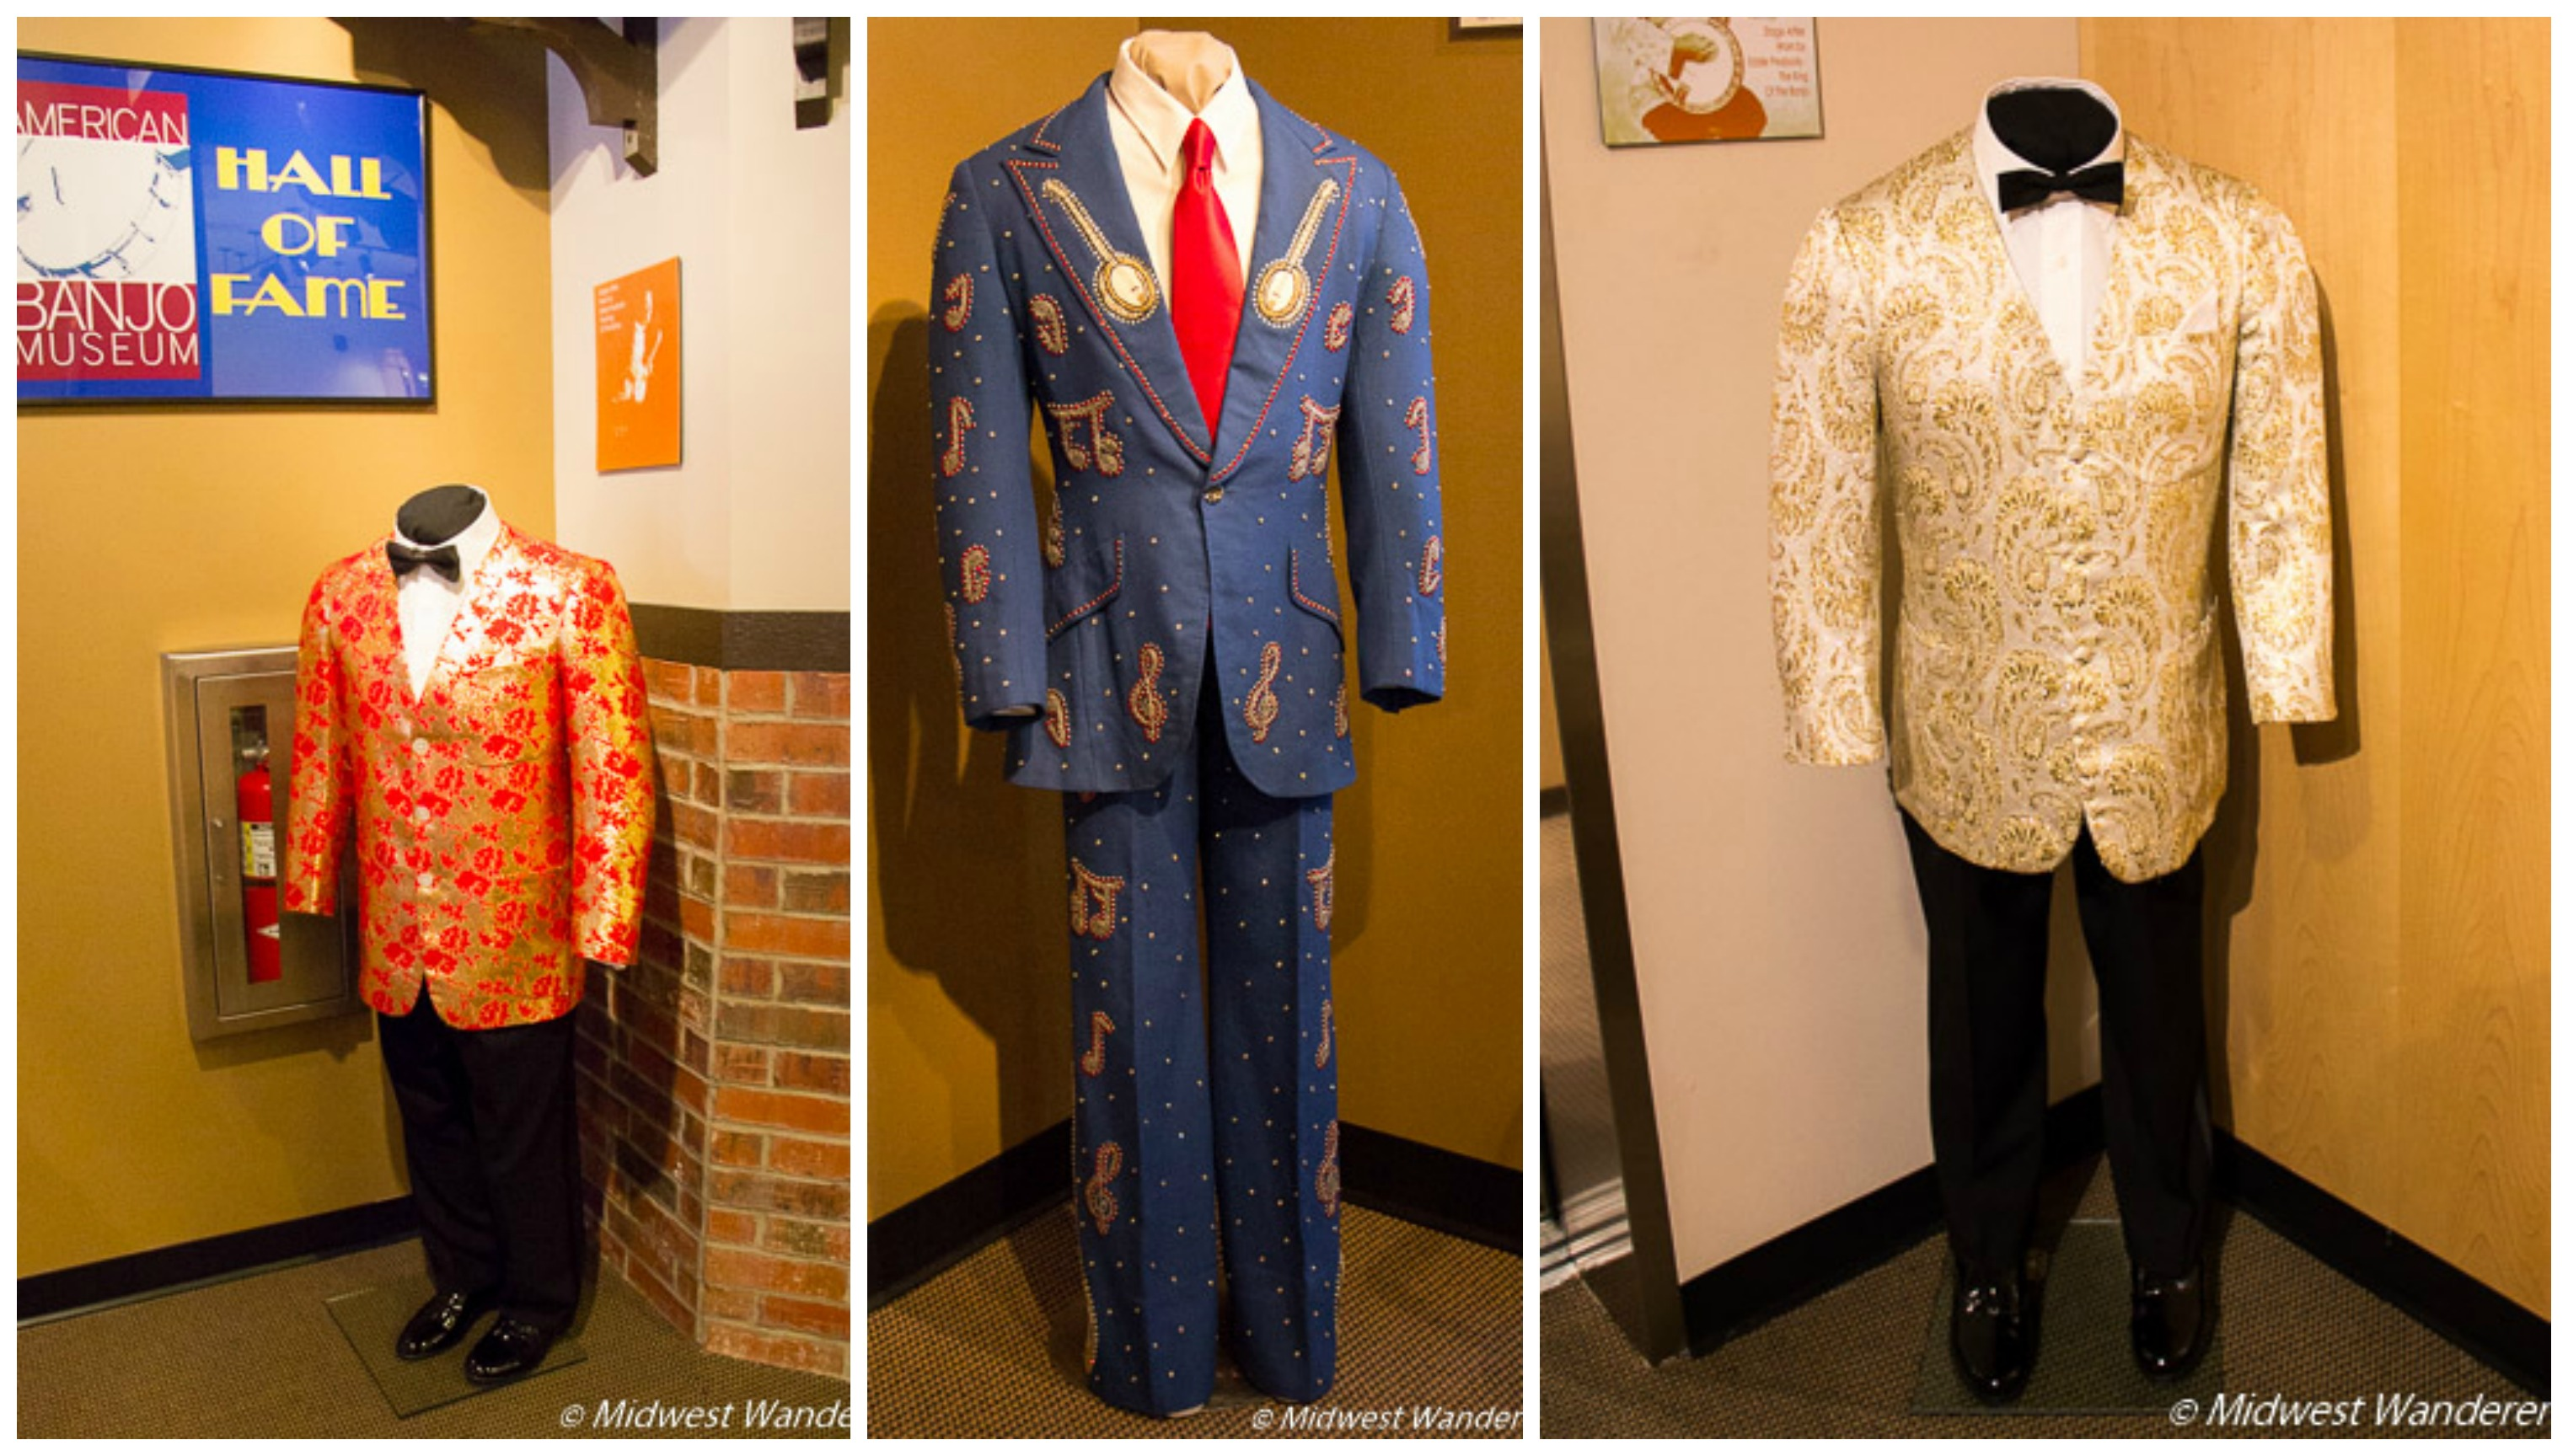 Performance Outfits in the Banjo Hall of Fame